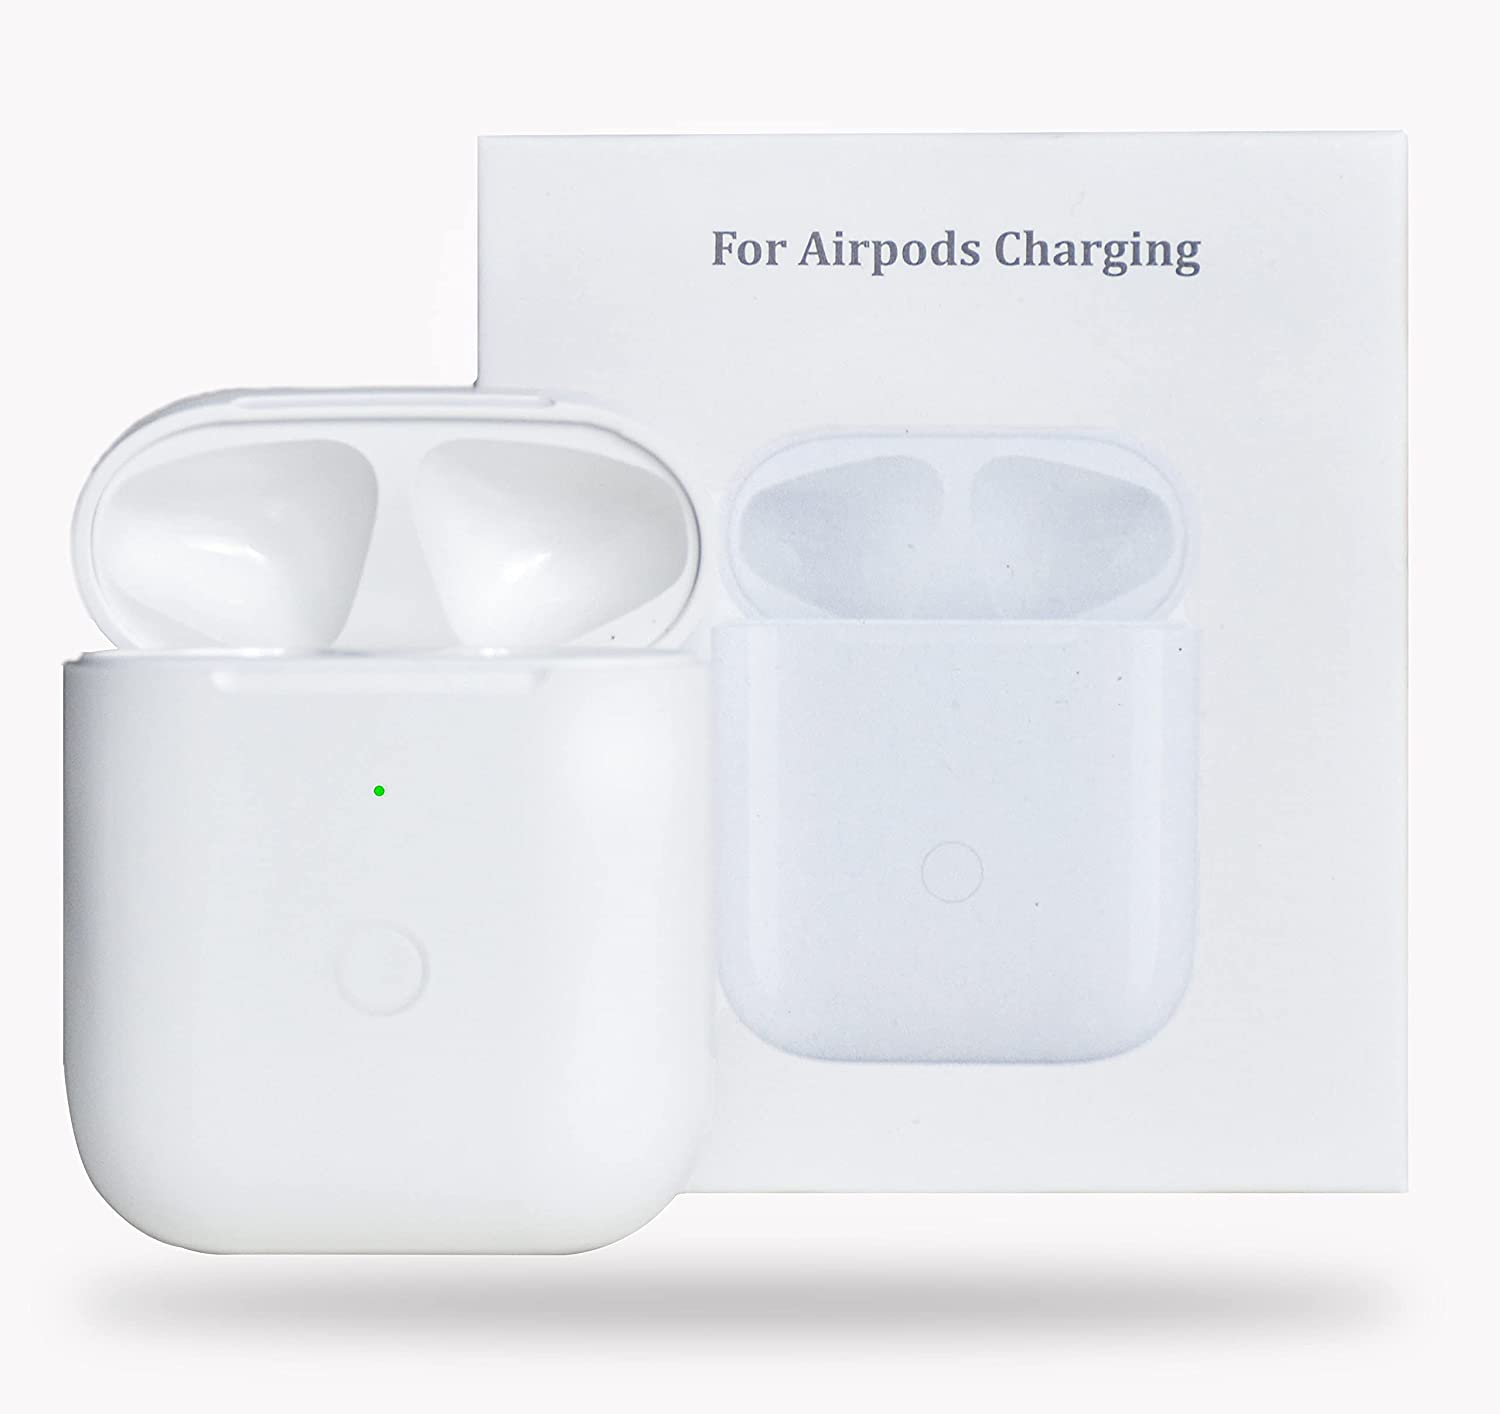 Airpods Wireless Charging Case Replacement Compatible with AirPods 1 & 2,Bluetooth Pairing Sync Button